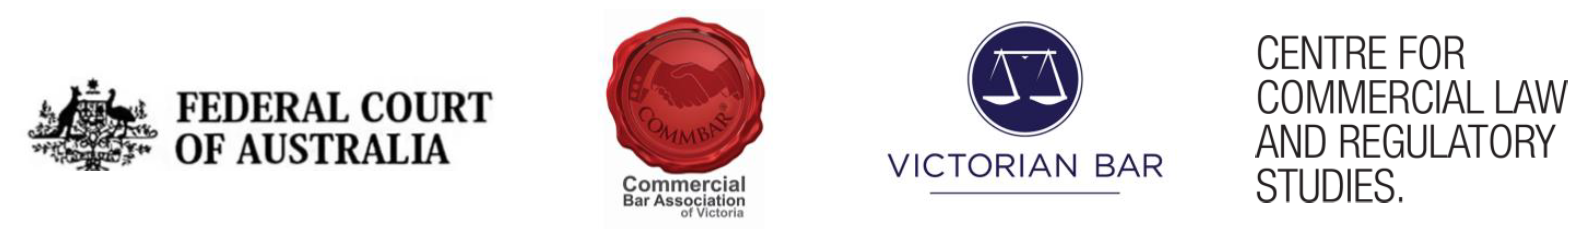 Logos for Federal Court of Australia, Commercial Bar Association of Victoria, Victorian Bar, Centre for Commercial and Regulatory Studies